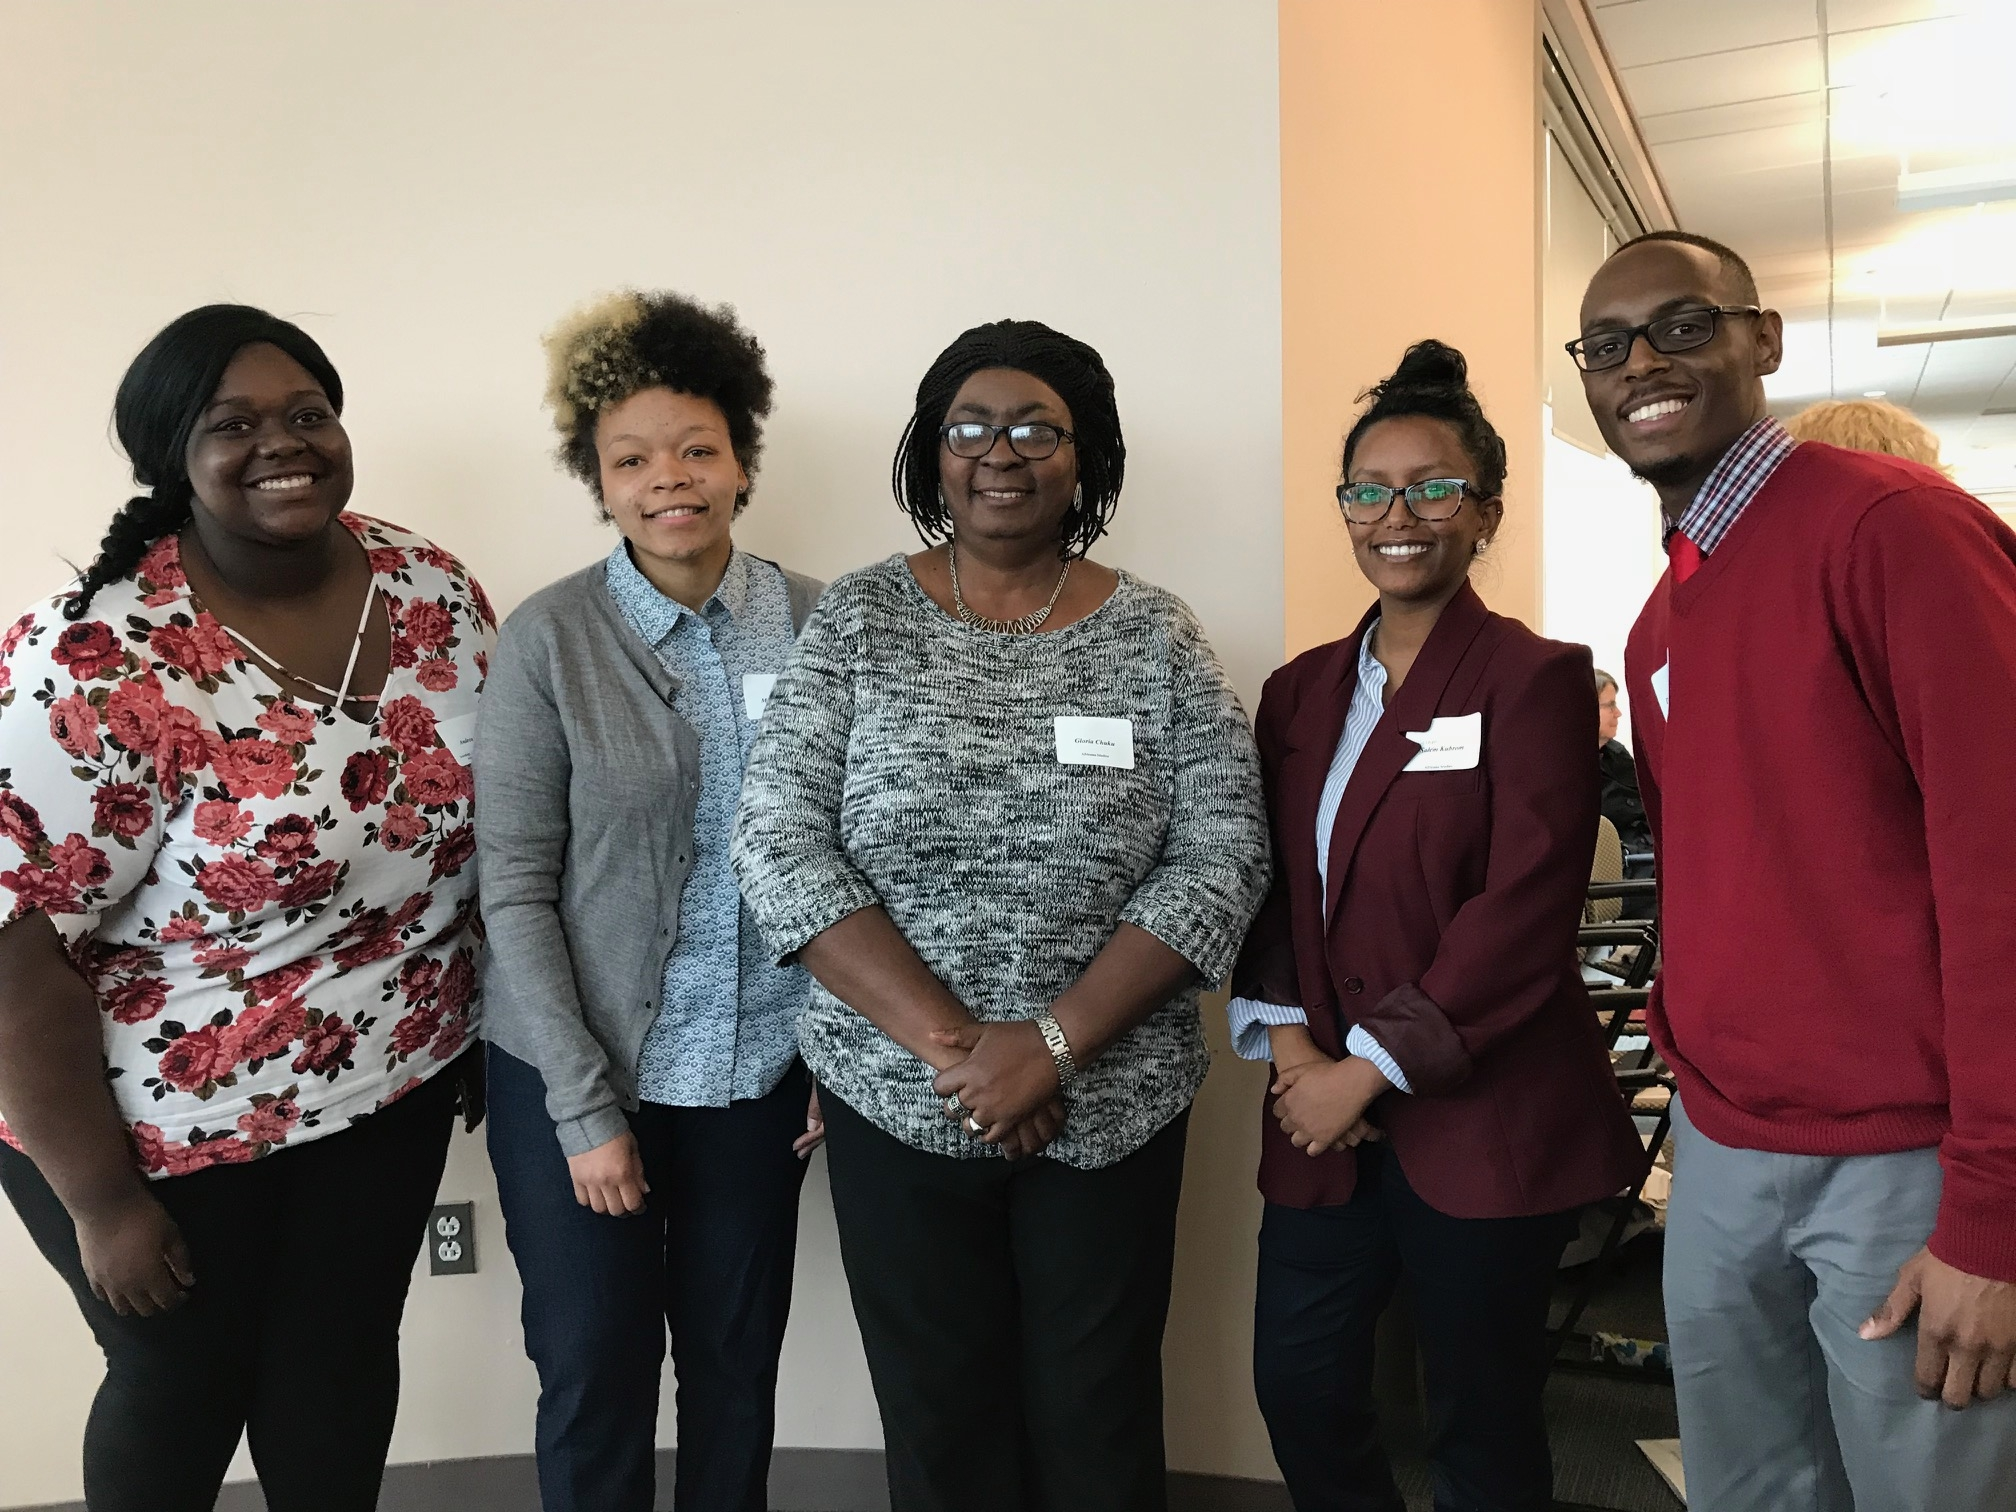 Africana Student Award Winners at the 2018 CAHSS Awards Reception